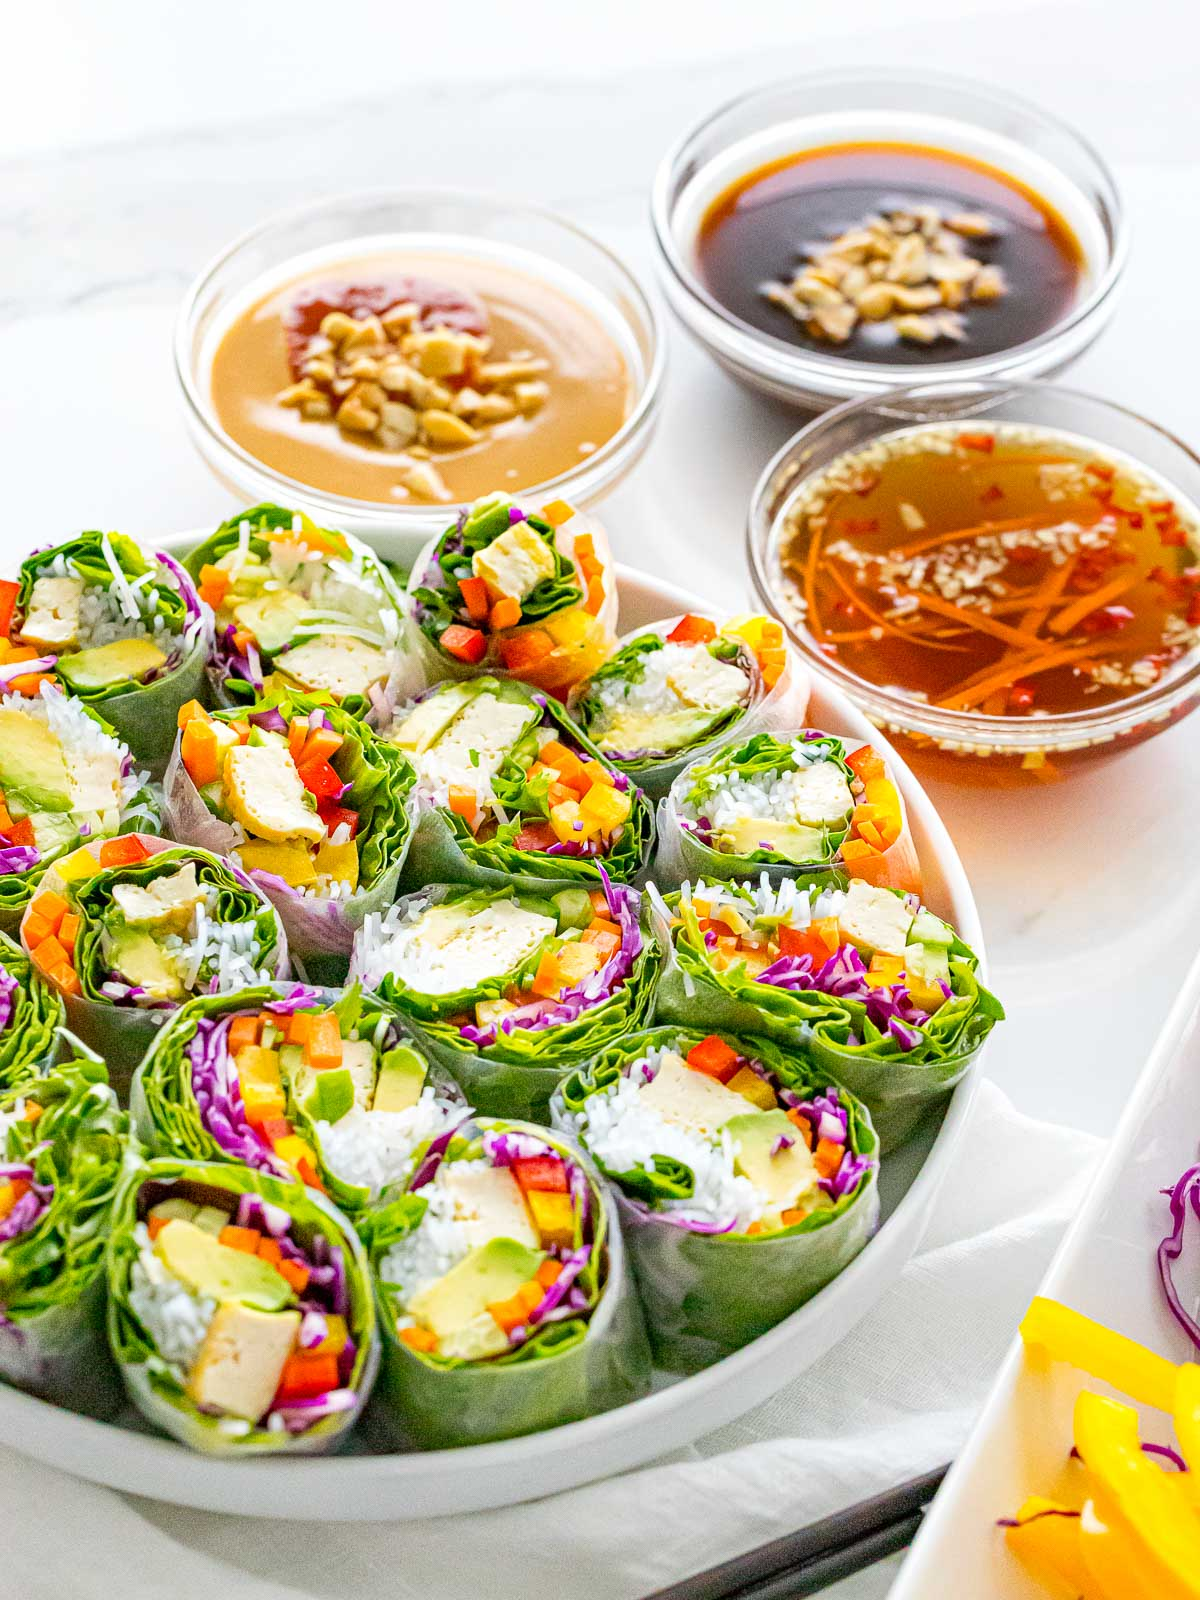 Vietnamese vegetarian summer rolls with peanut sauce, hoisin sauce, and nuoc cham